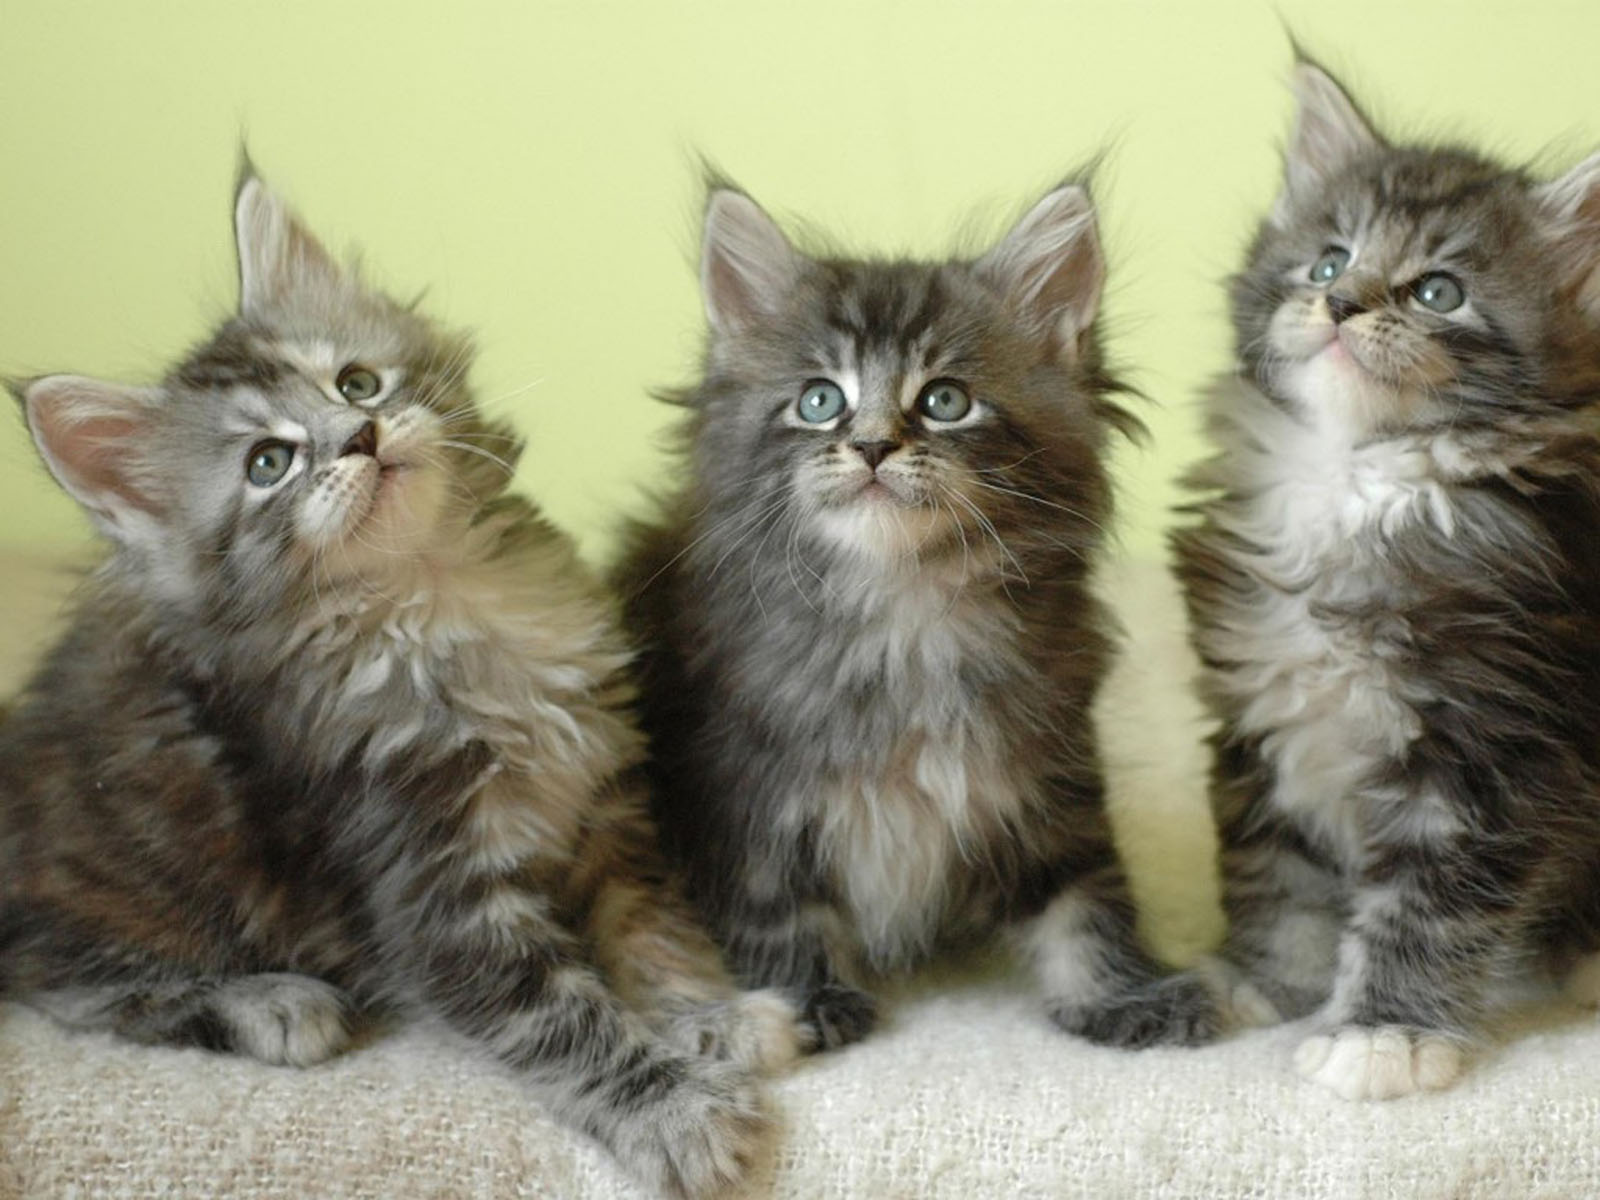 cat maine coon kittens wallpapers bollywood hot actress wallpapers. Black Bedroom Furniture Sets. Home Design Ideas